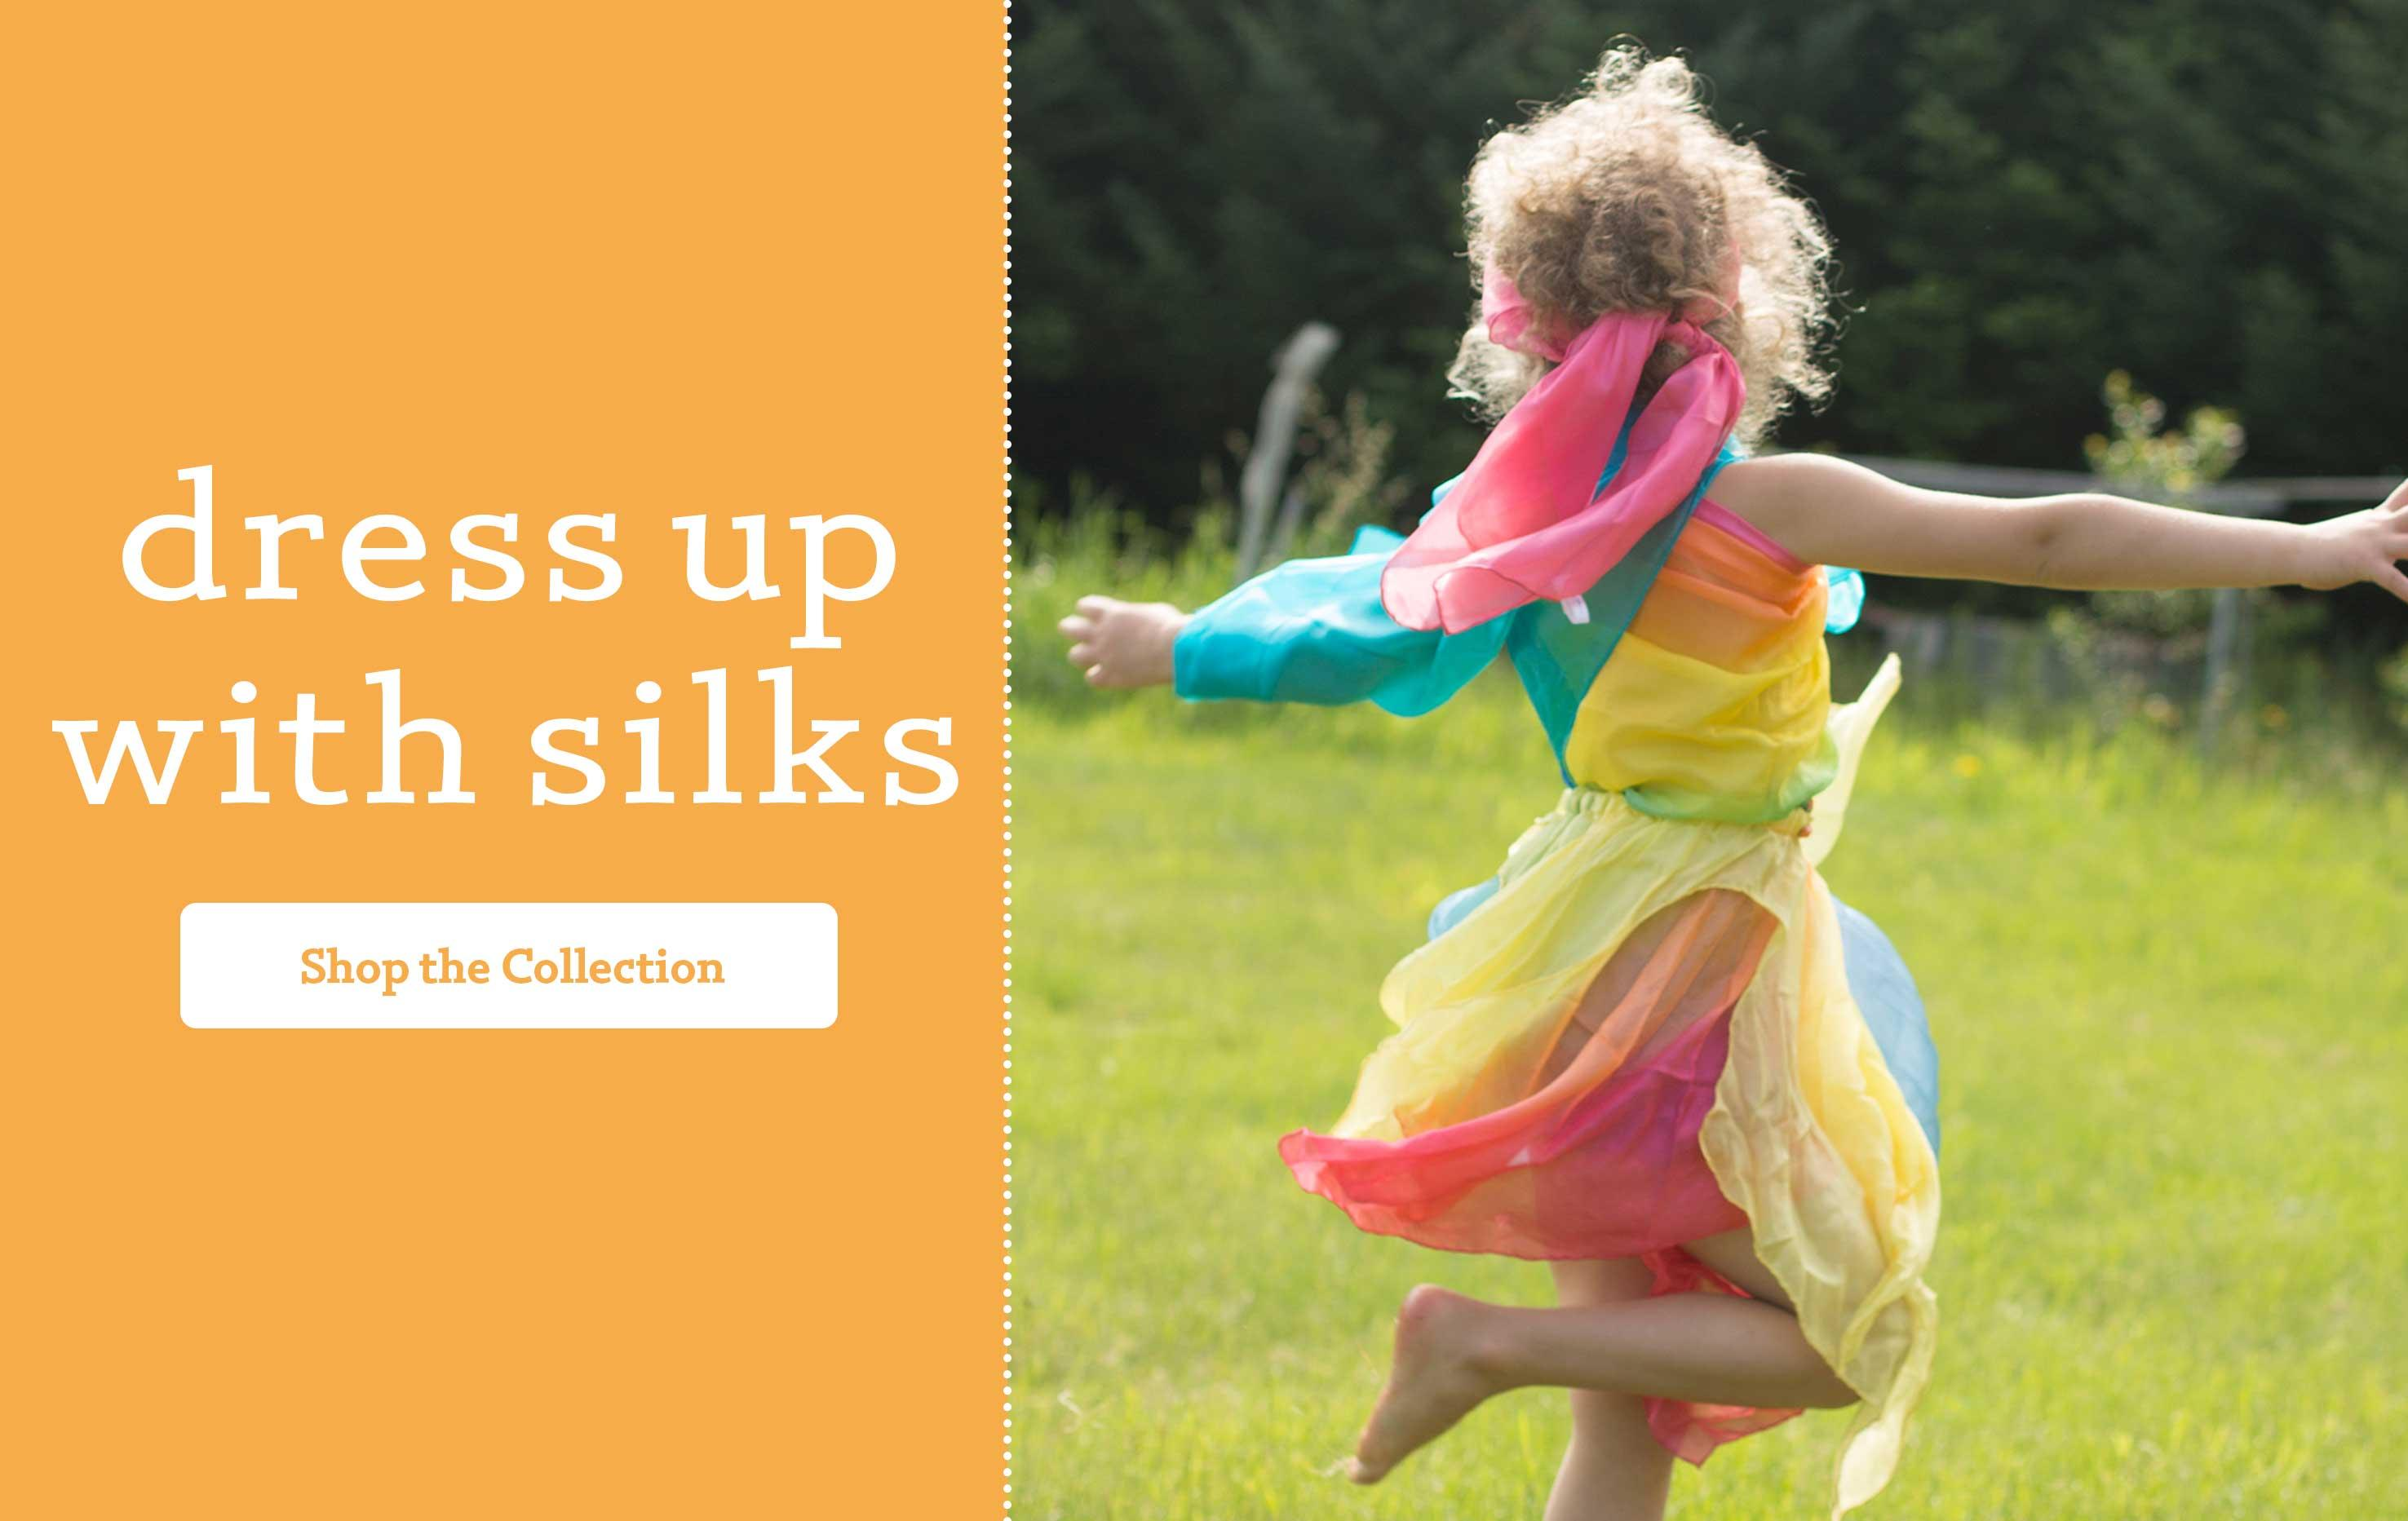 dress up with silks